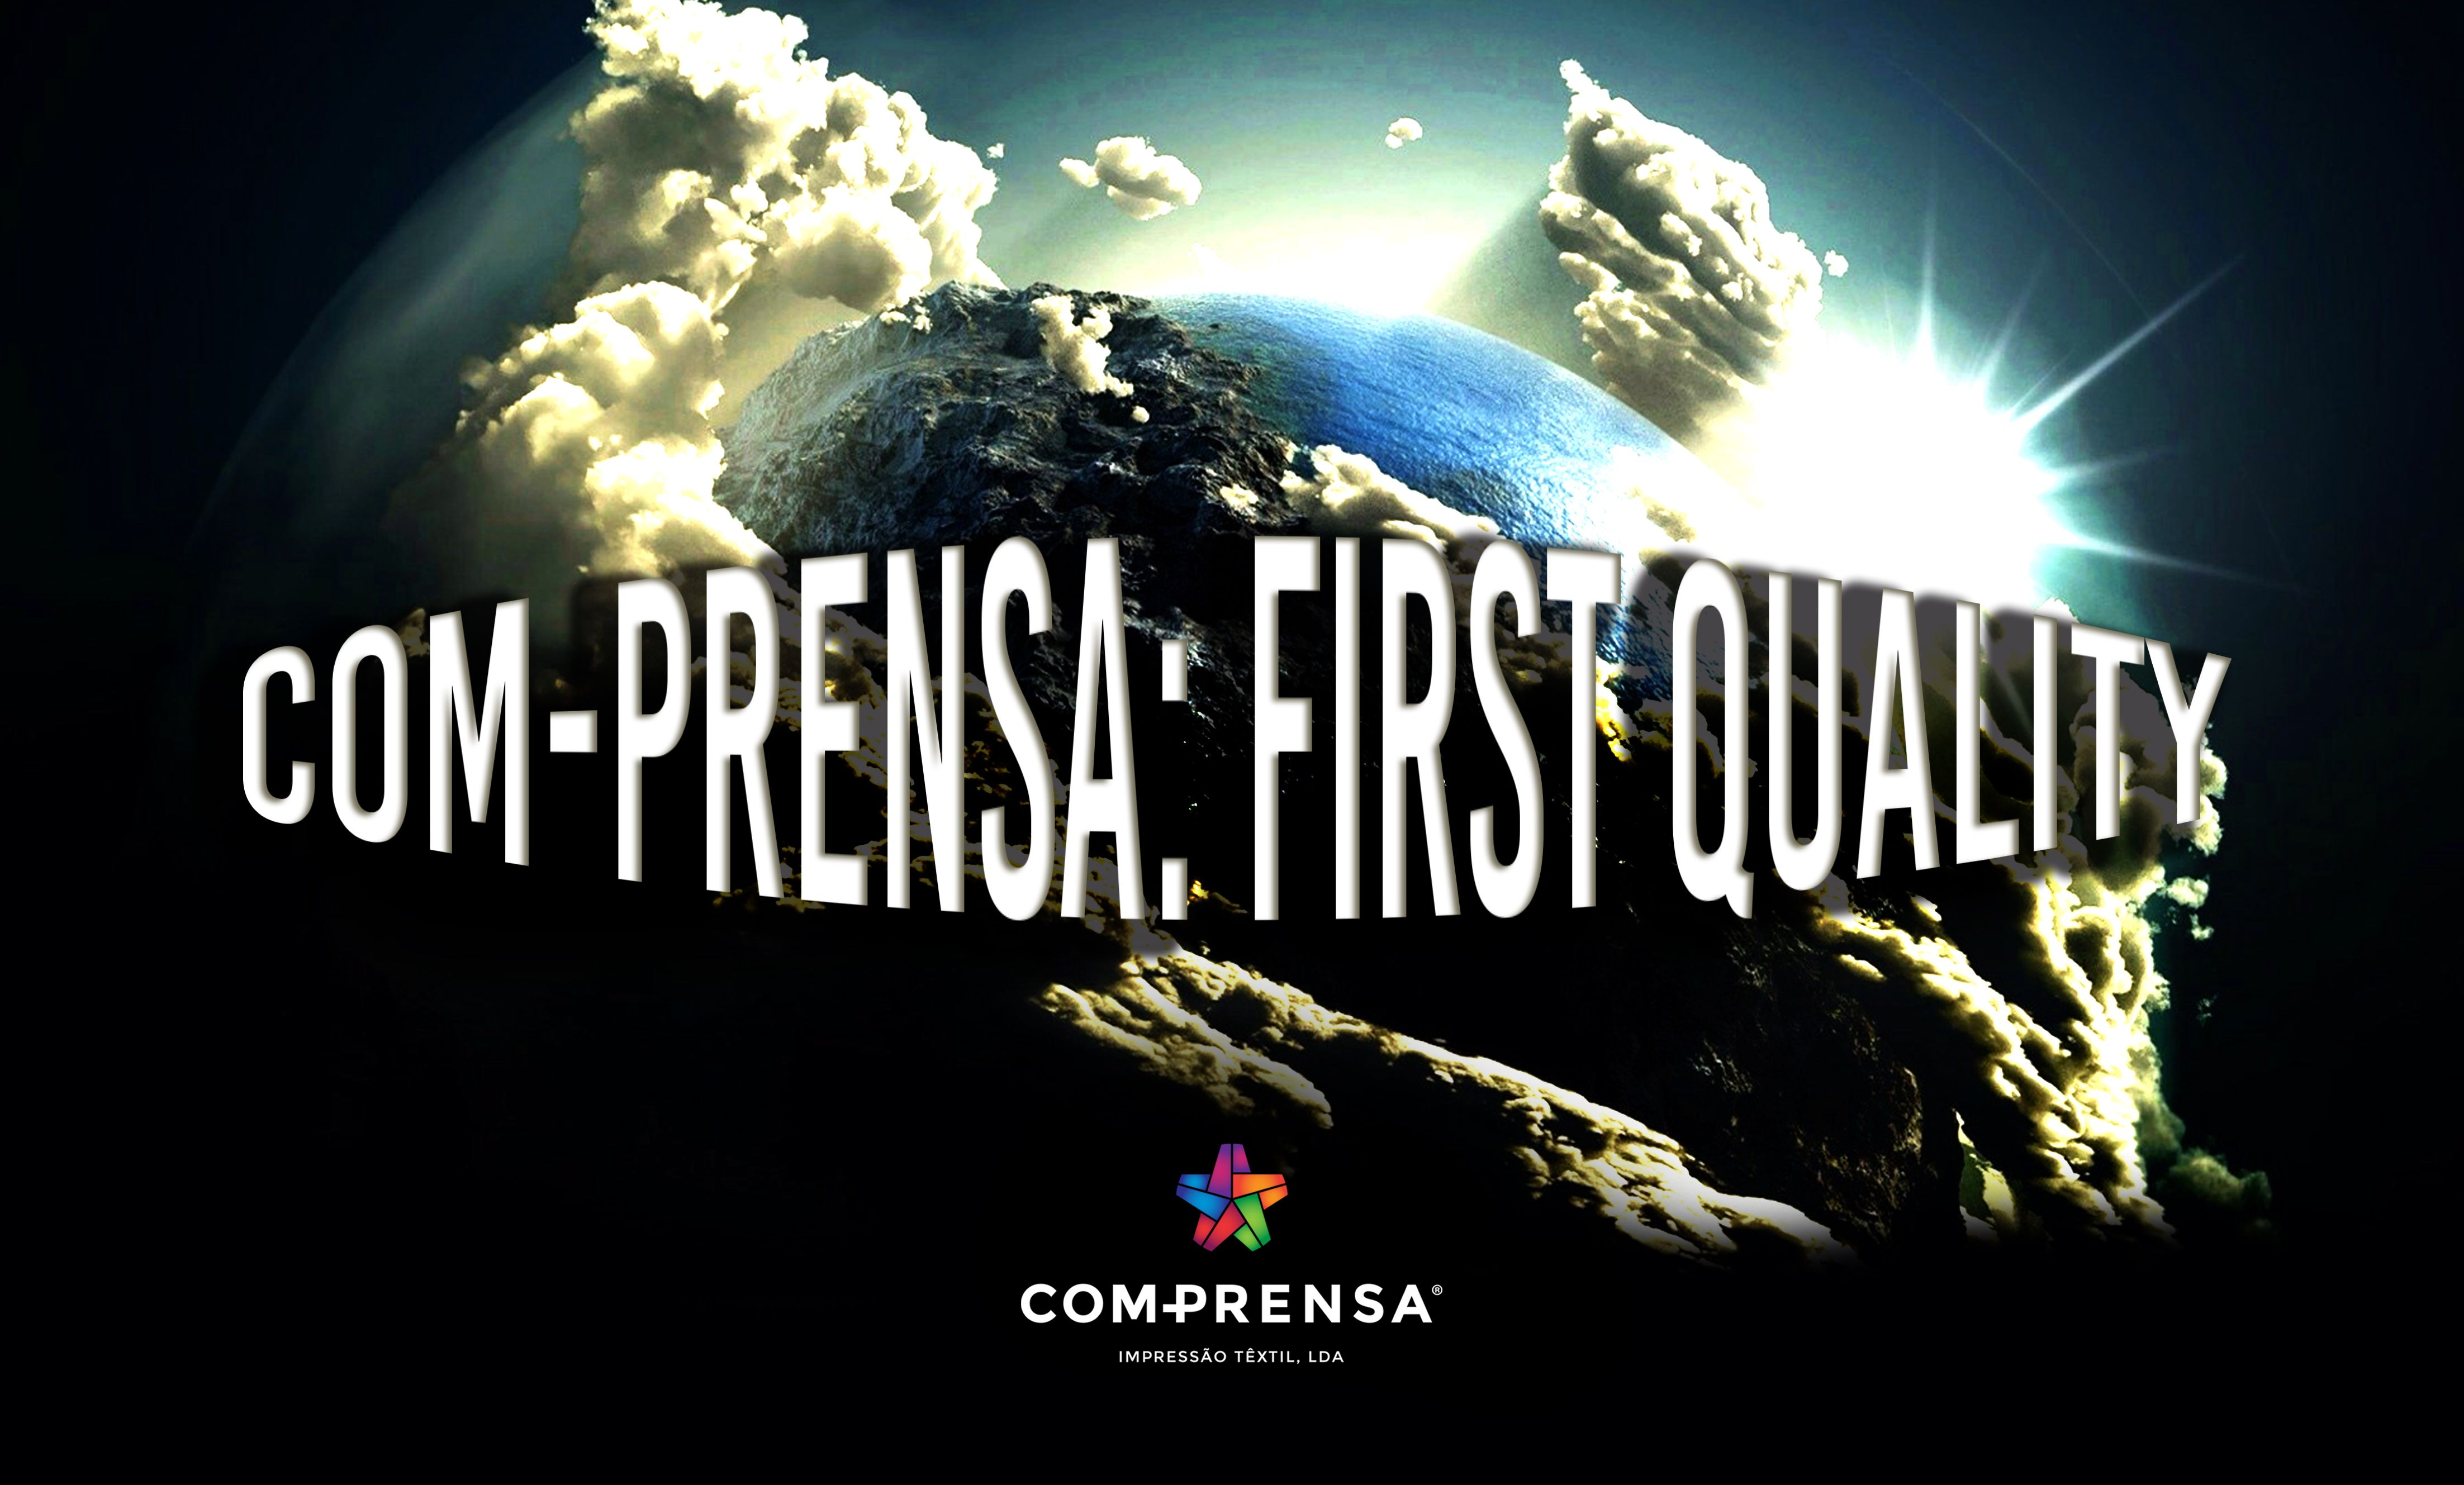 COM-PRENSA: FIRST QUALITY